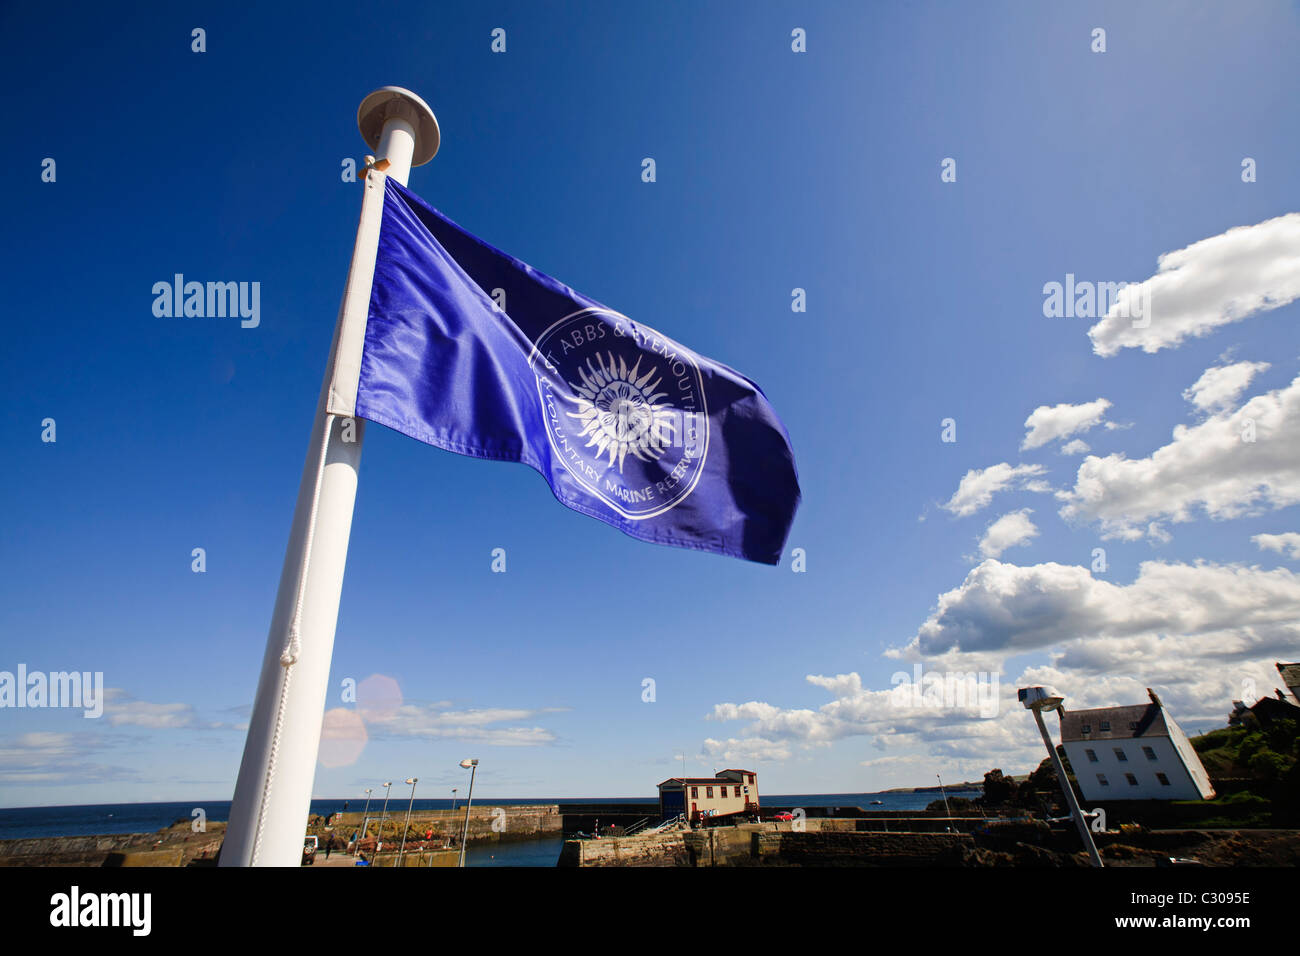 The flag of the St. Abbs and Eyemouth Voluntary Marine Reserve flutters in the wind in St. Abbs harbour, Berwickshire. - Stock Image